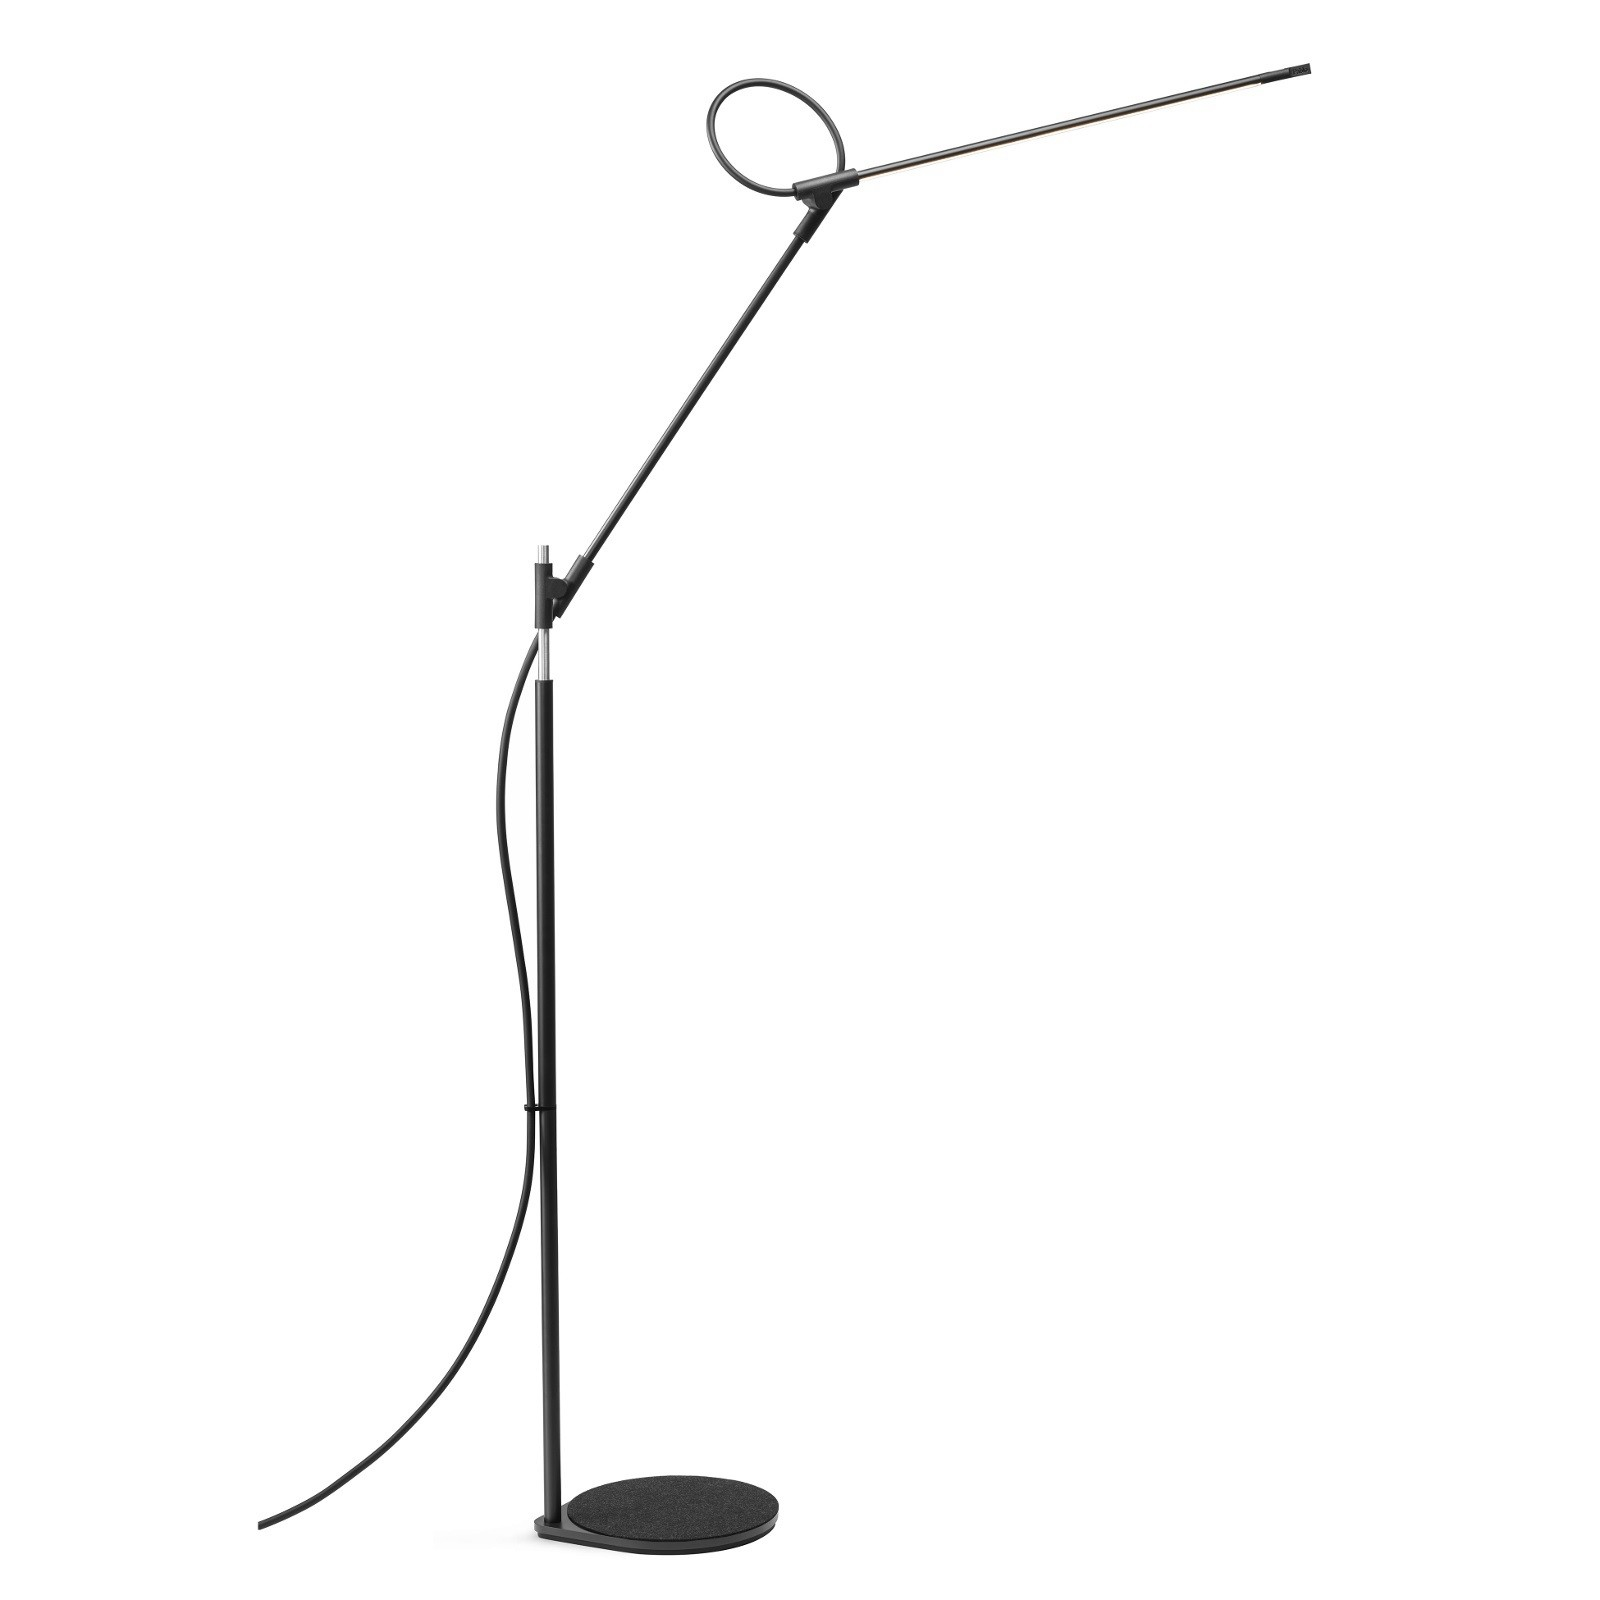 Superlight LED Floor Lamp (Black) - Pablo Designs